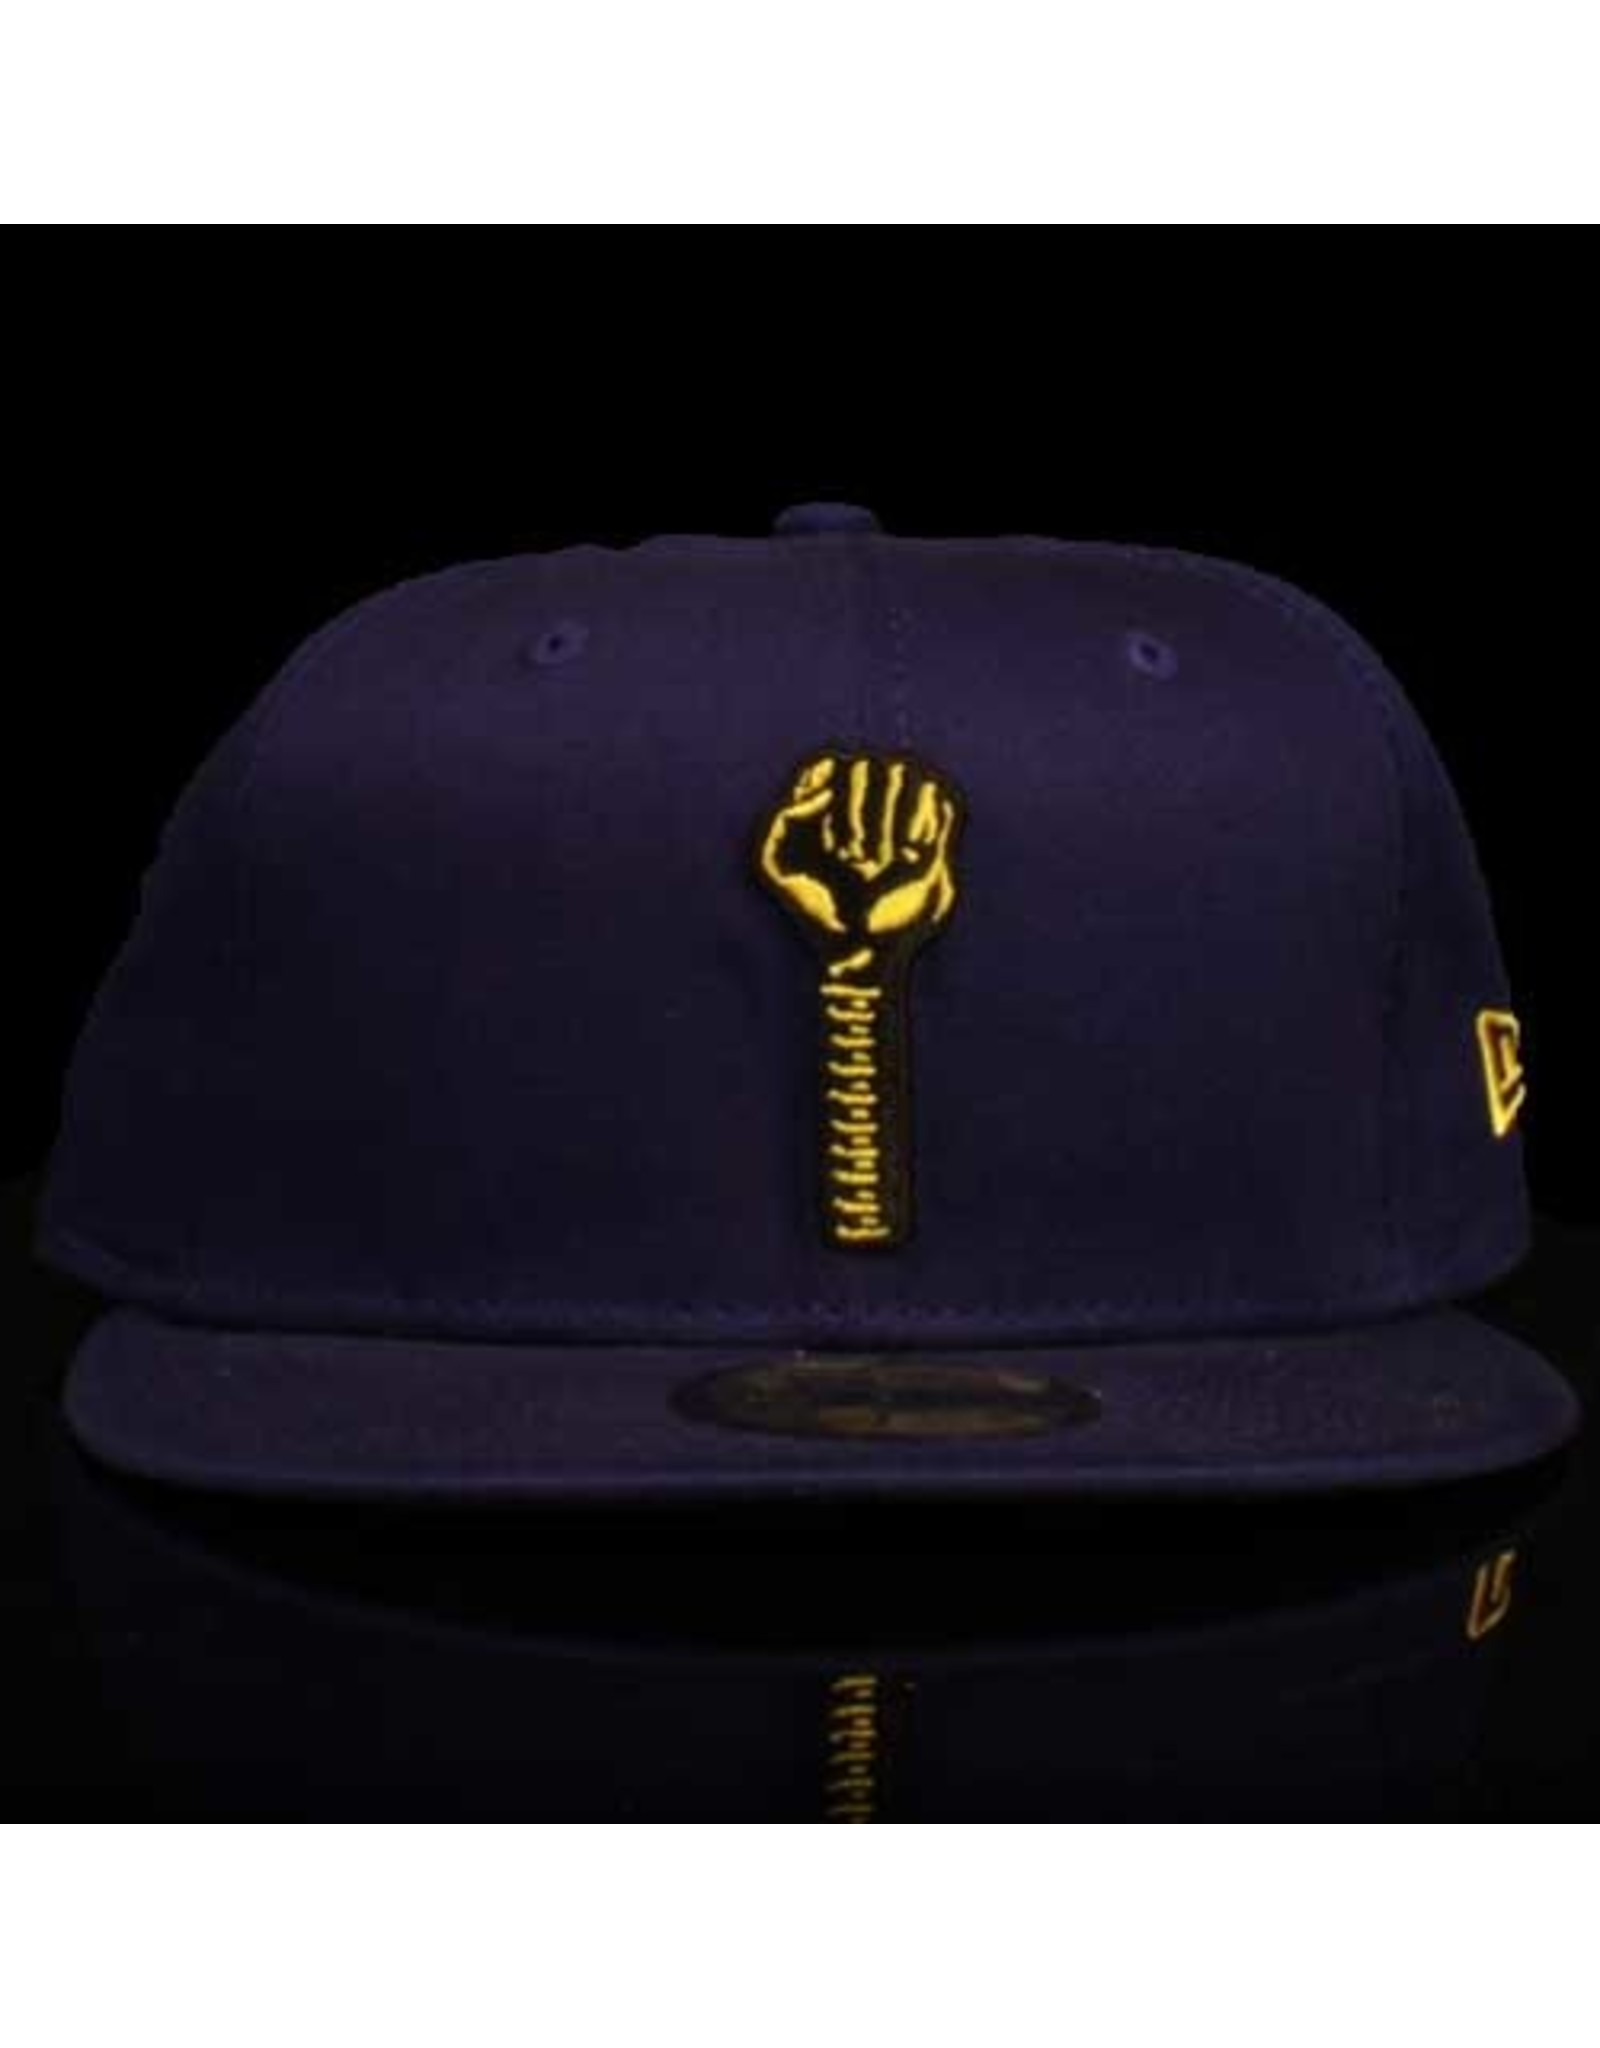 New Era x Hardies Navy Black Bolt Fitted